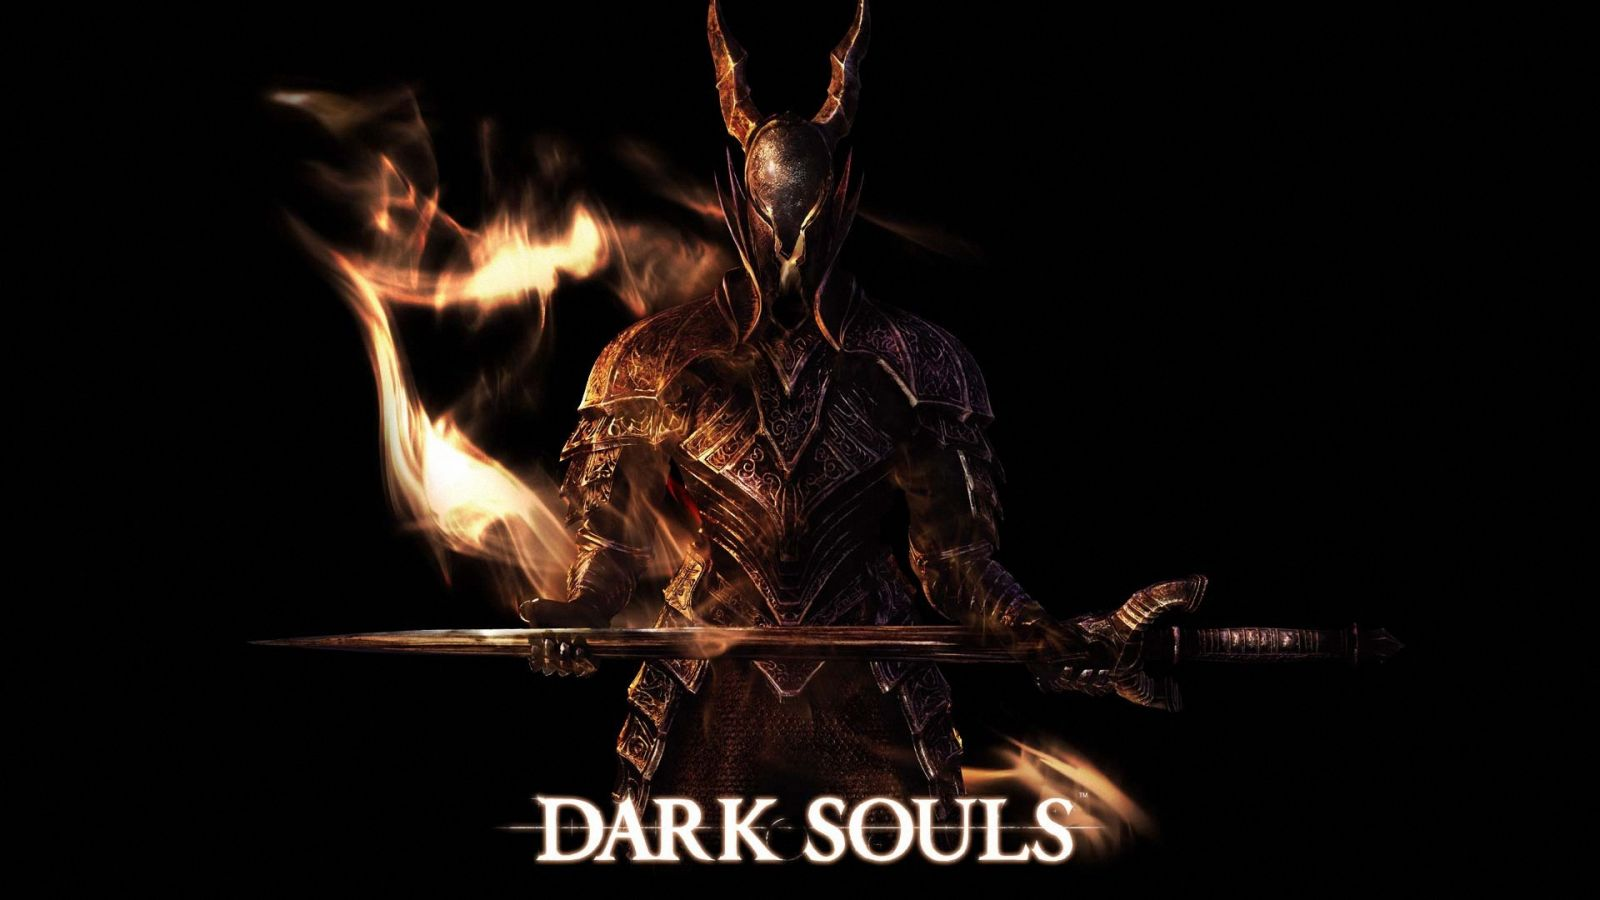 Dark Souls 3 Wallpaper